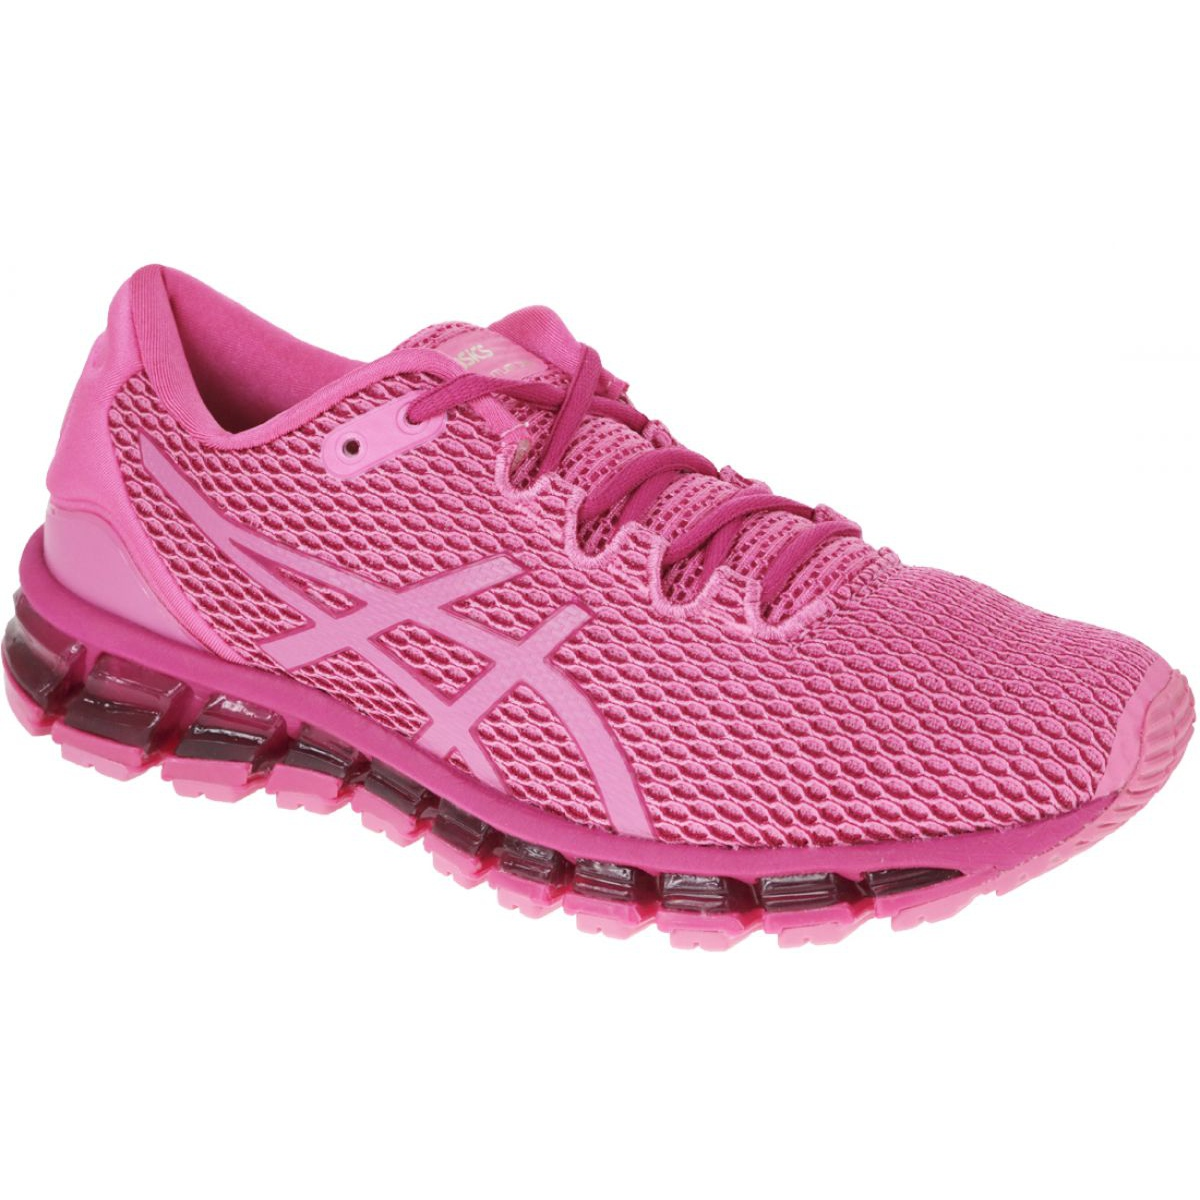 474665ab489 Pink Running shoes Asics Gel-Quantum 360 Shift Mx W T889N-2021